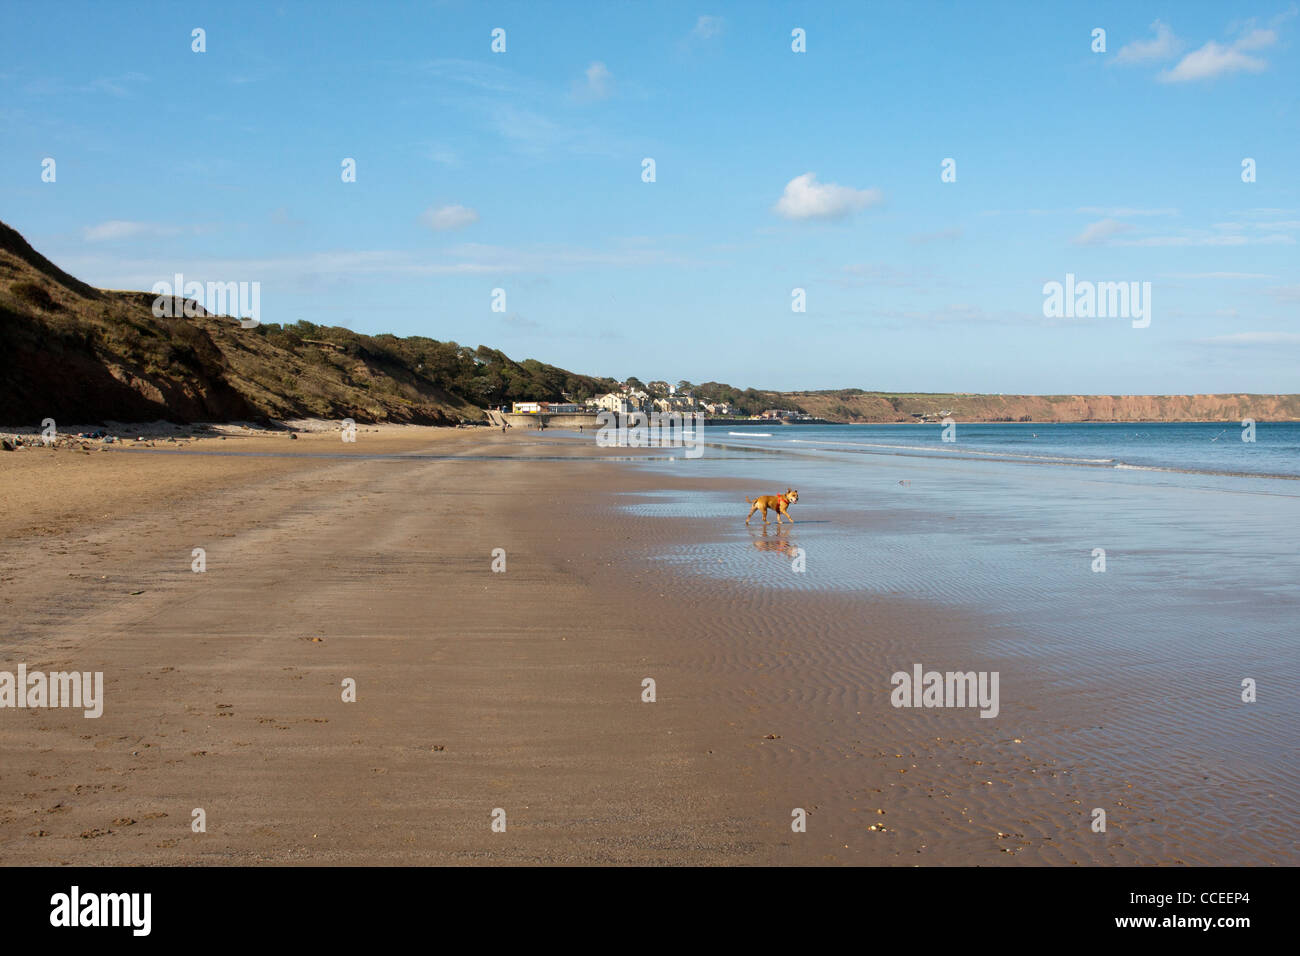 Megan at Filey Beach - Stock Image